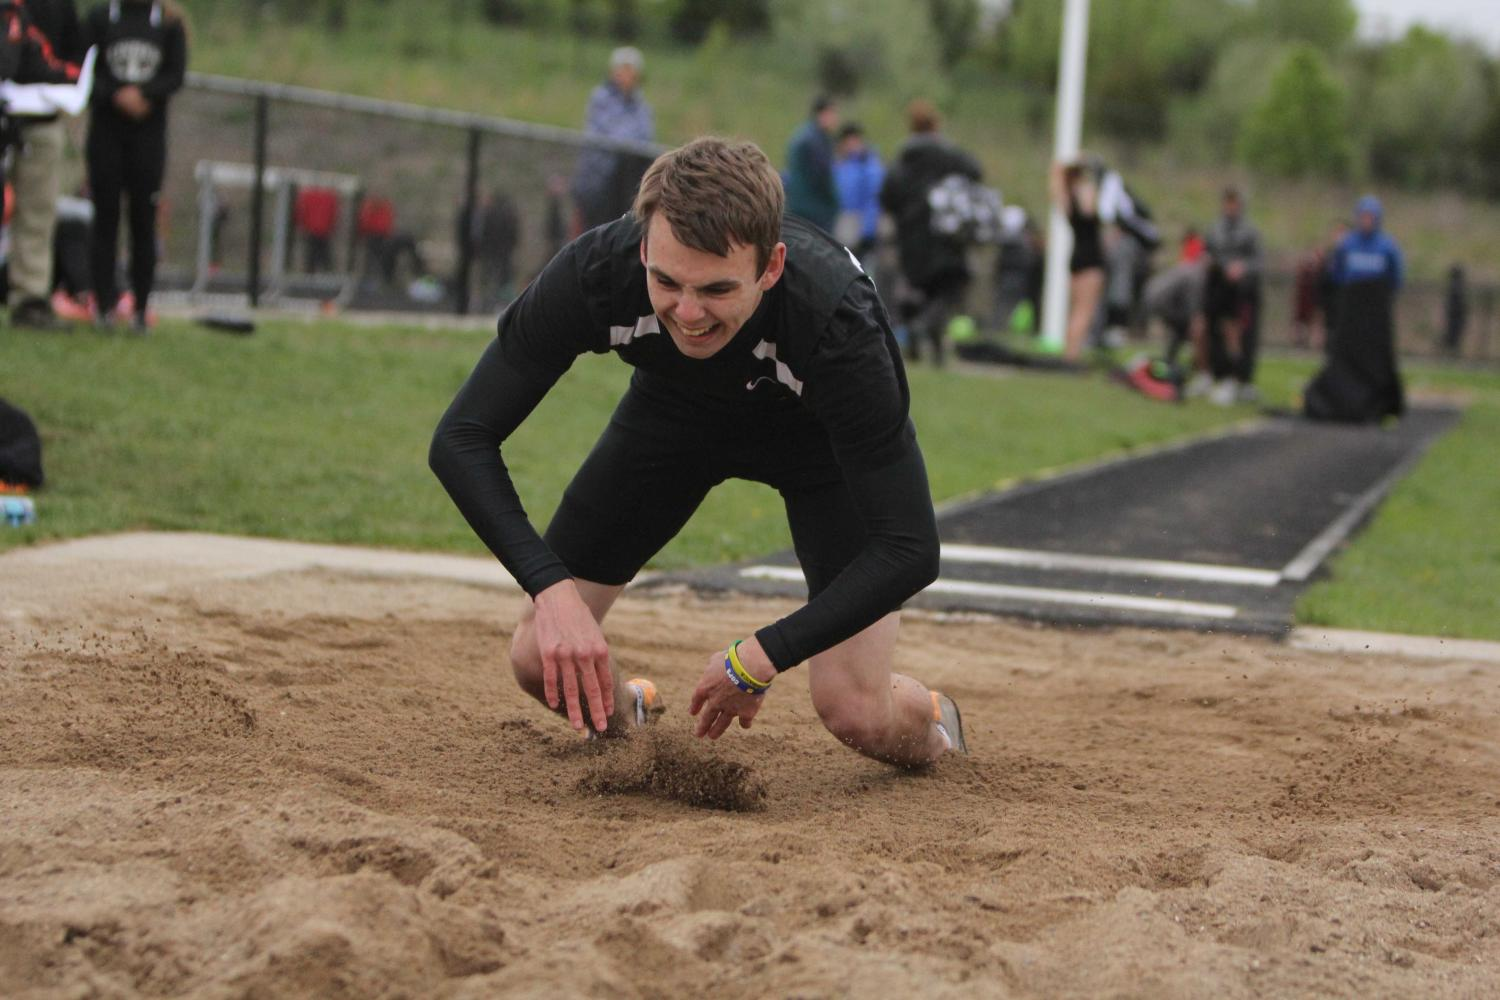 Laughing during the long jump, senior Sean Stiles enjoys one of his last home track meets. After completing the long jump, Stiles smiles as he hits the sand.